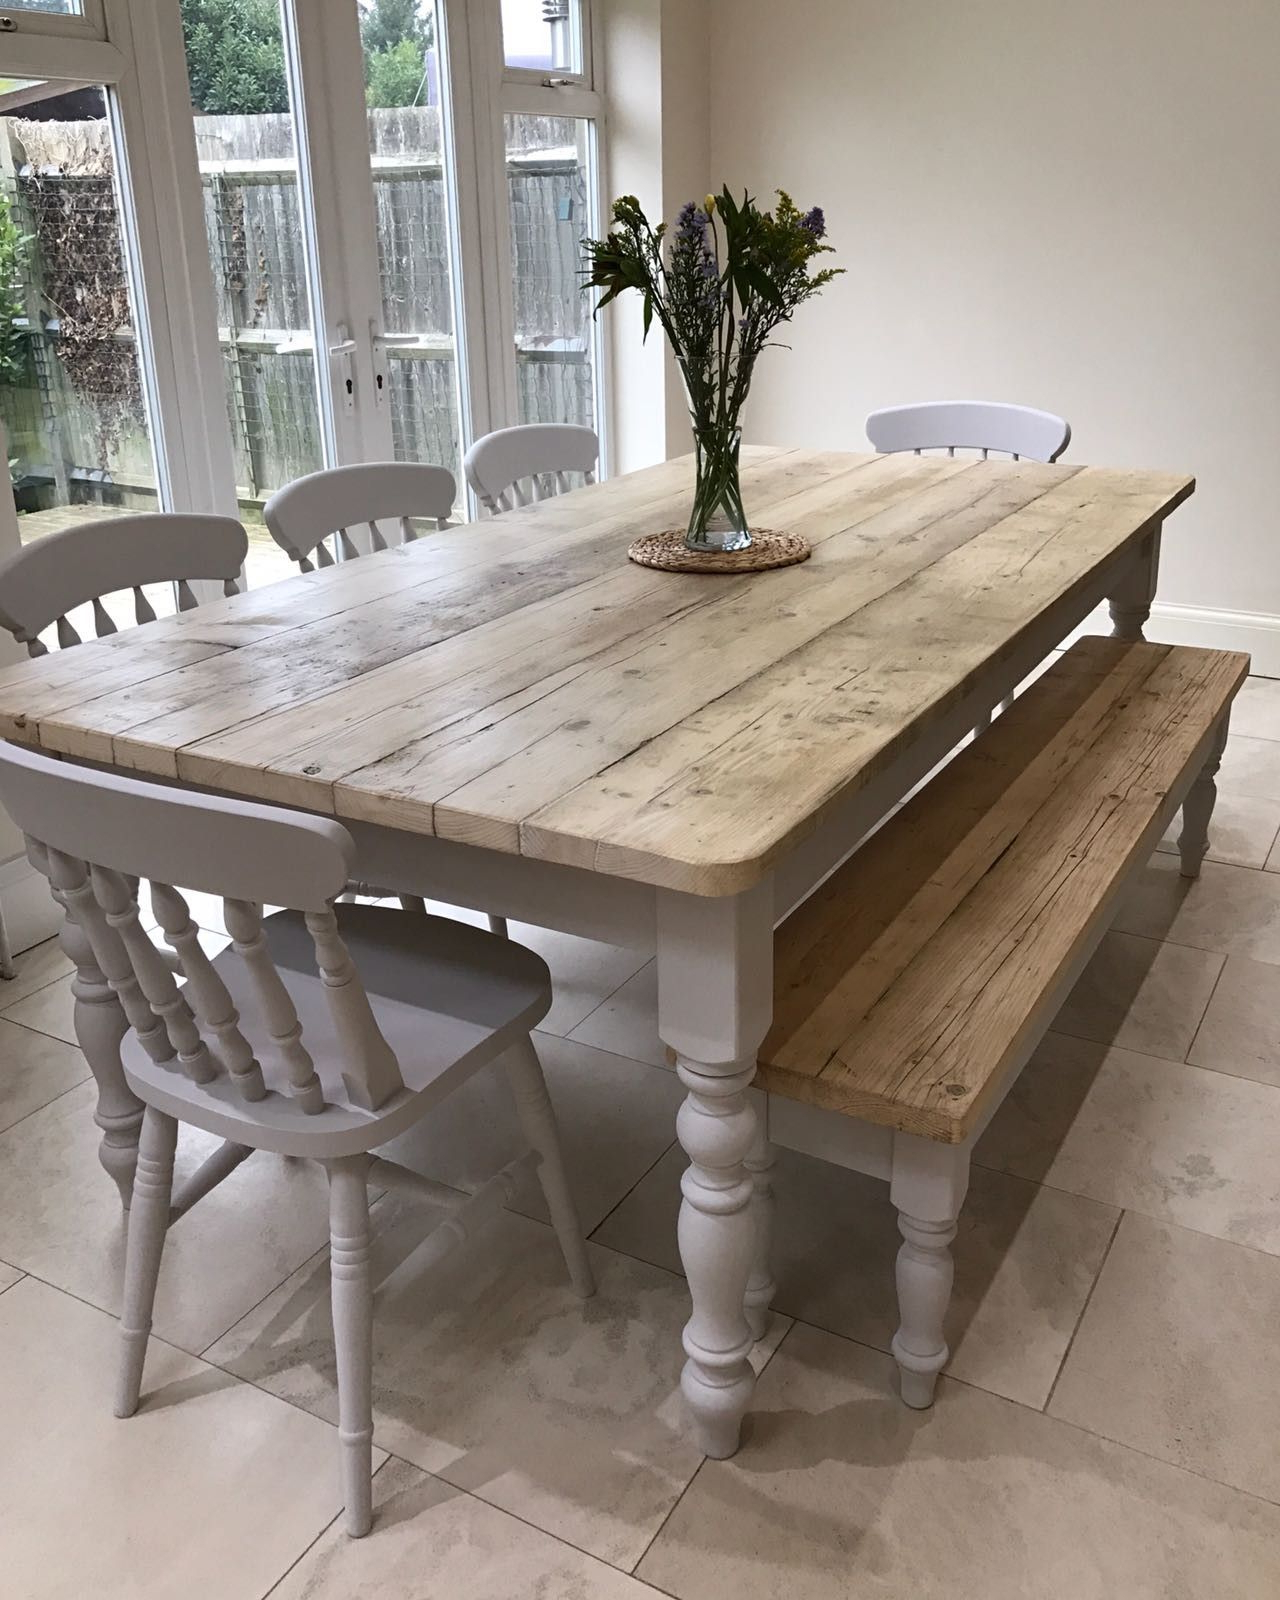 Large Rustic Look Dining Tables With Regard To Most Recently Released The Florence Clear' Table Made From Reclaimed Wood (View 5 of 30)